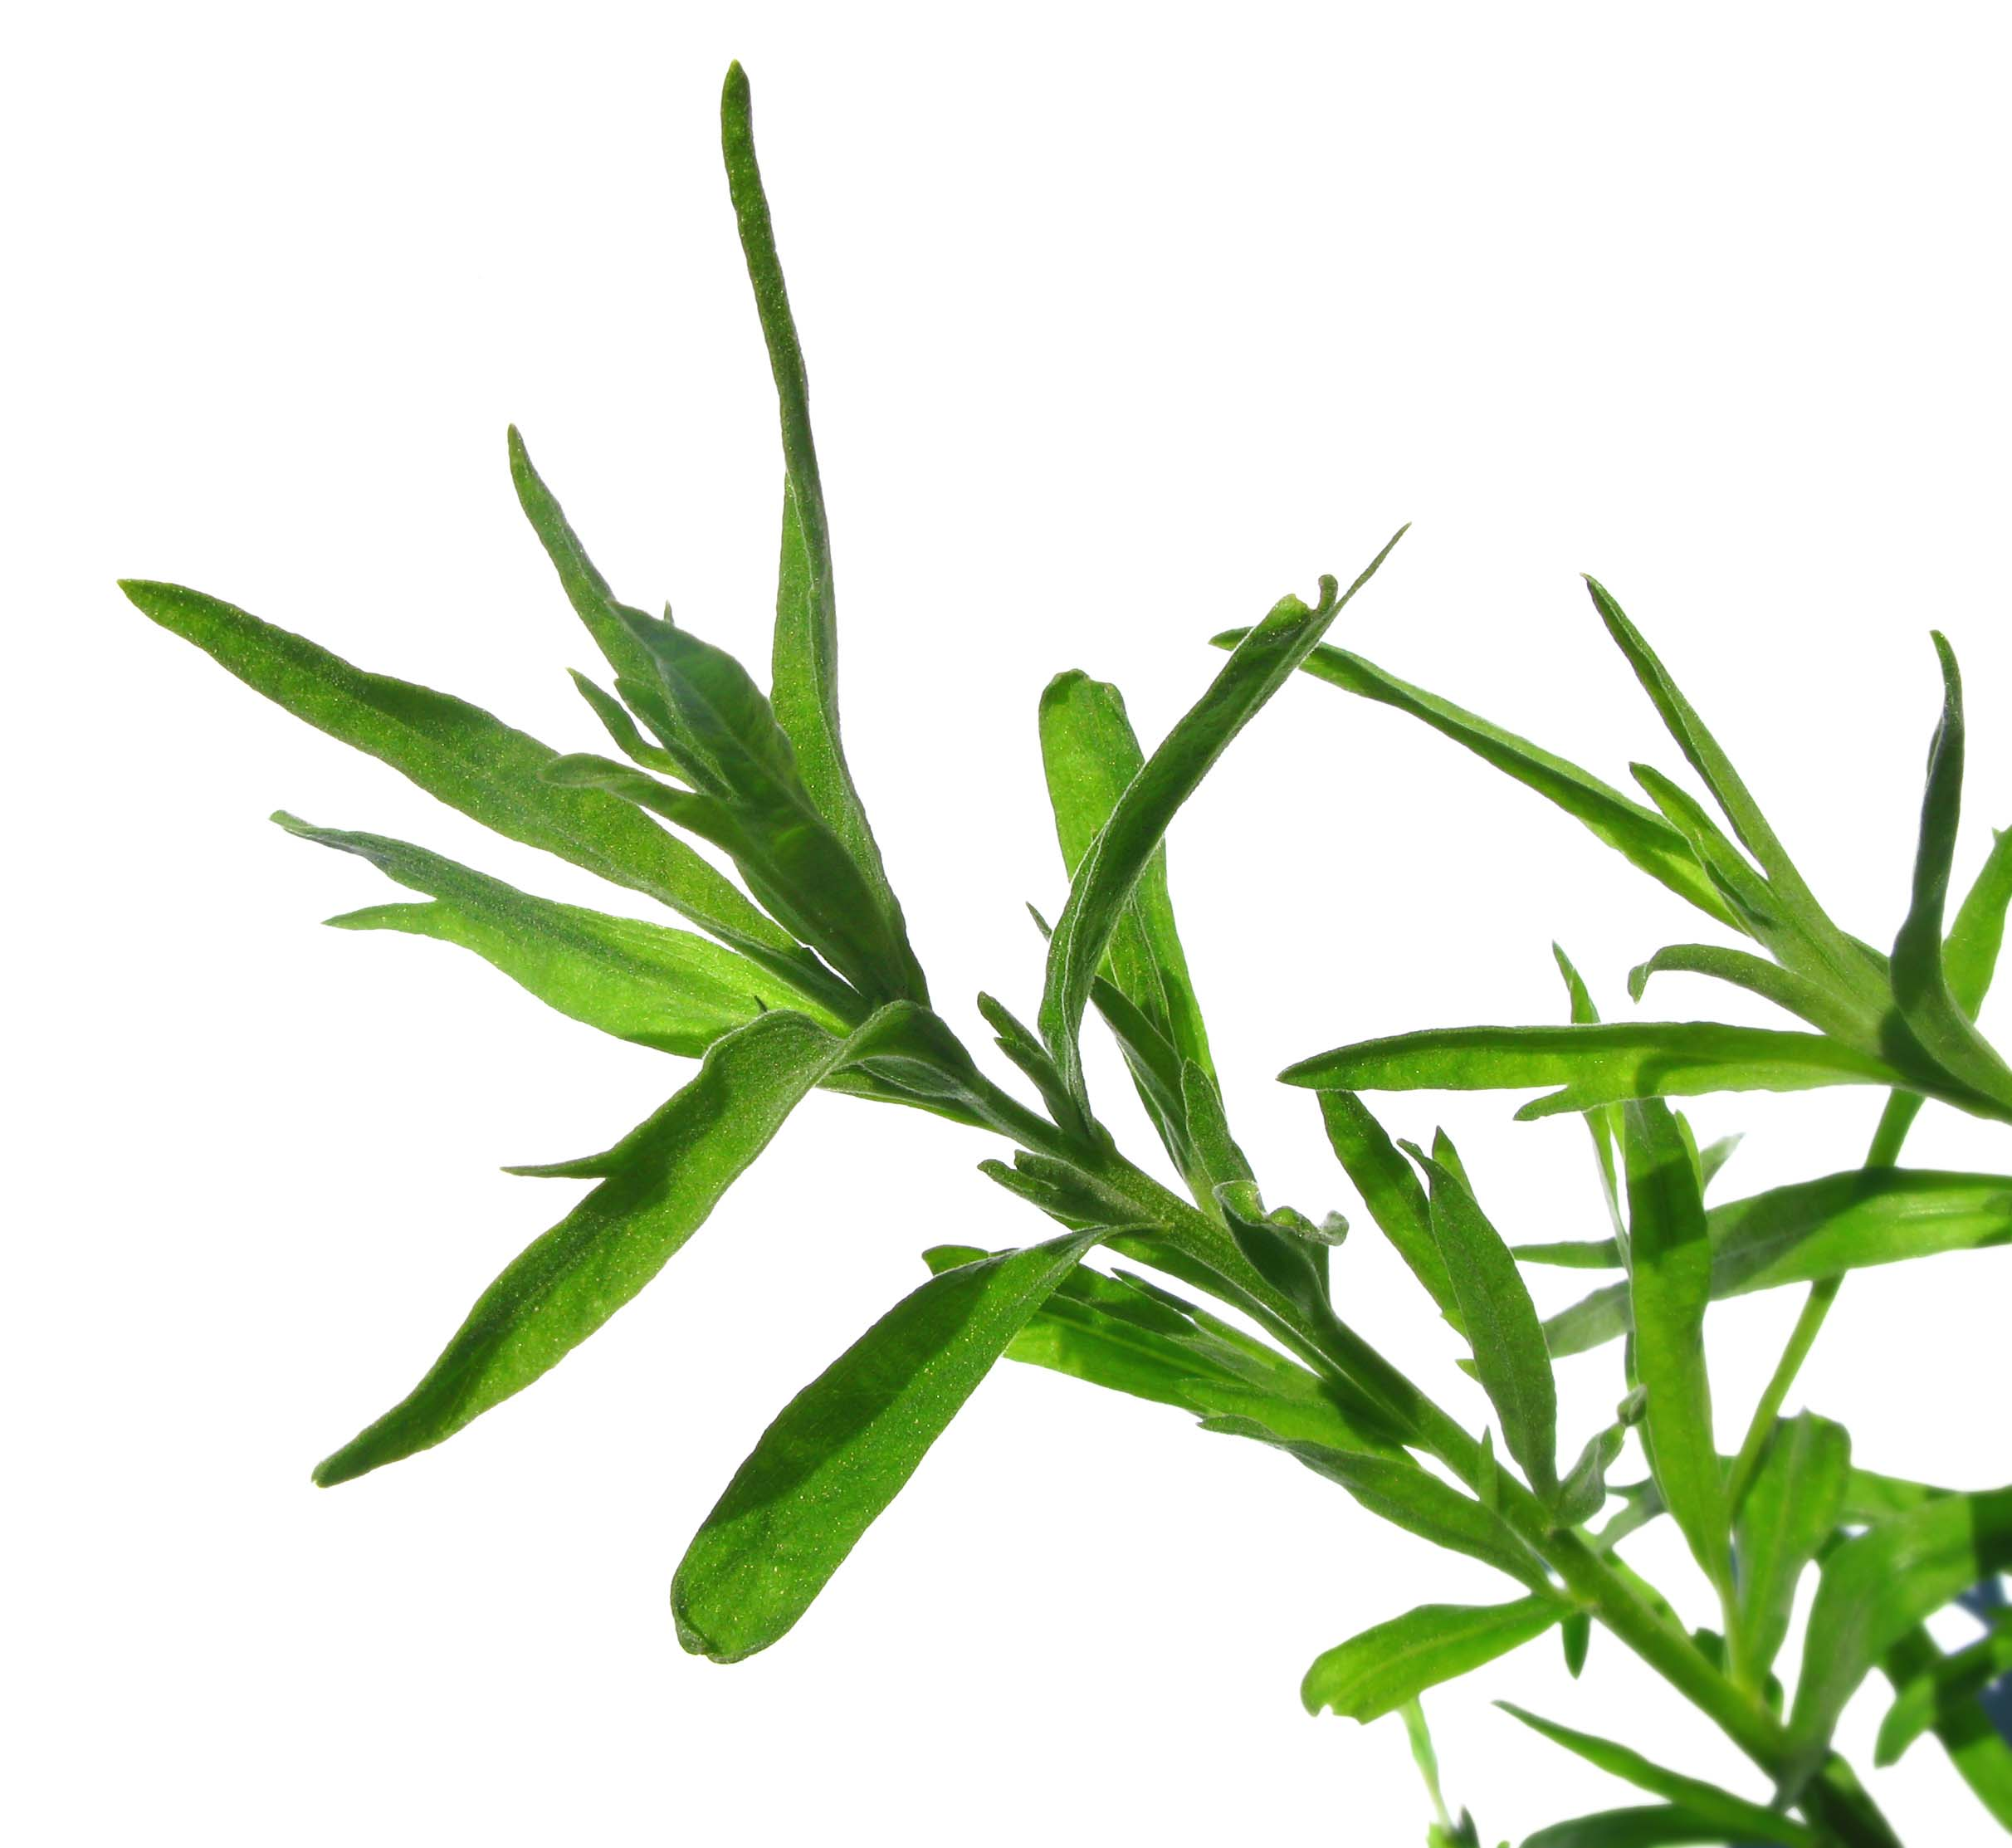 tarragon: the warming herb